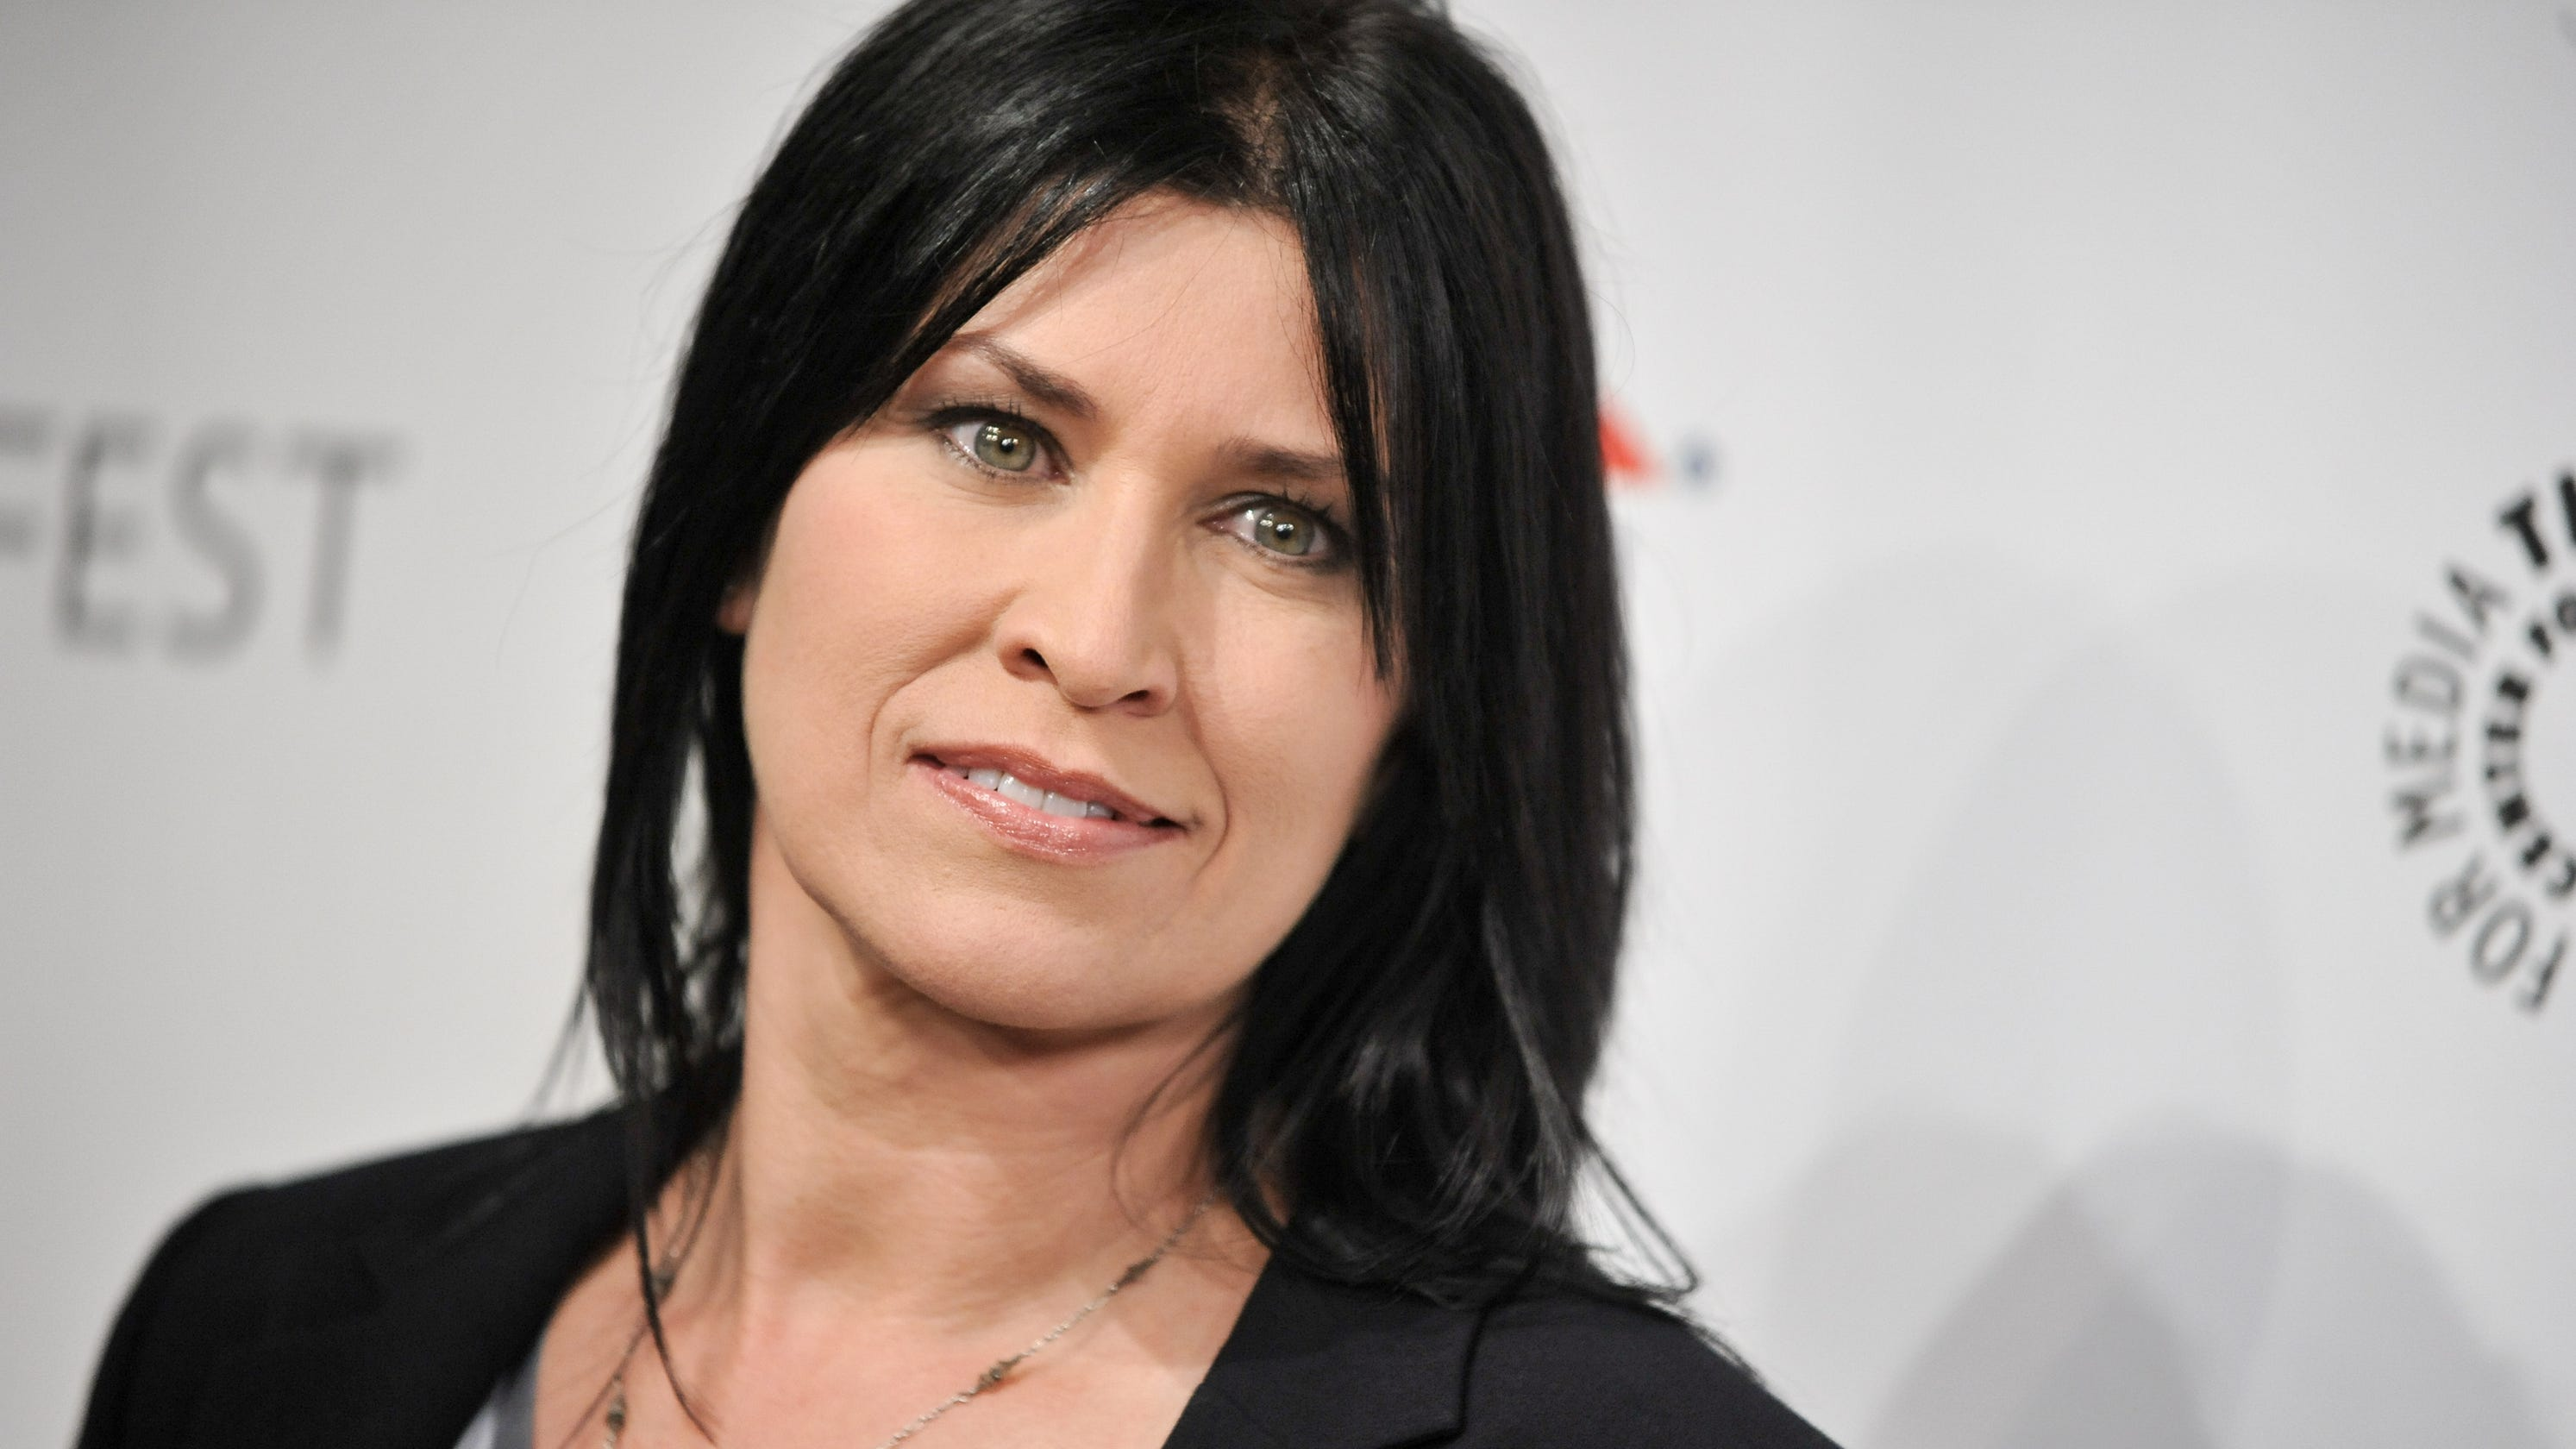 'Dancing with the Stars': 'Facts of Life' star Nancy McKeon to dance with Val Chmerkovskiy